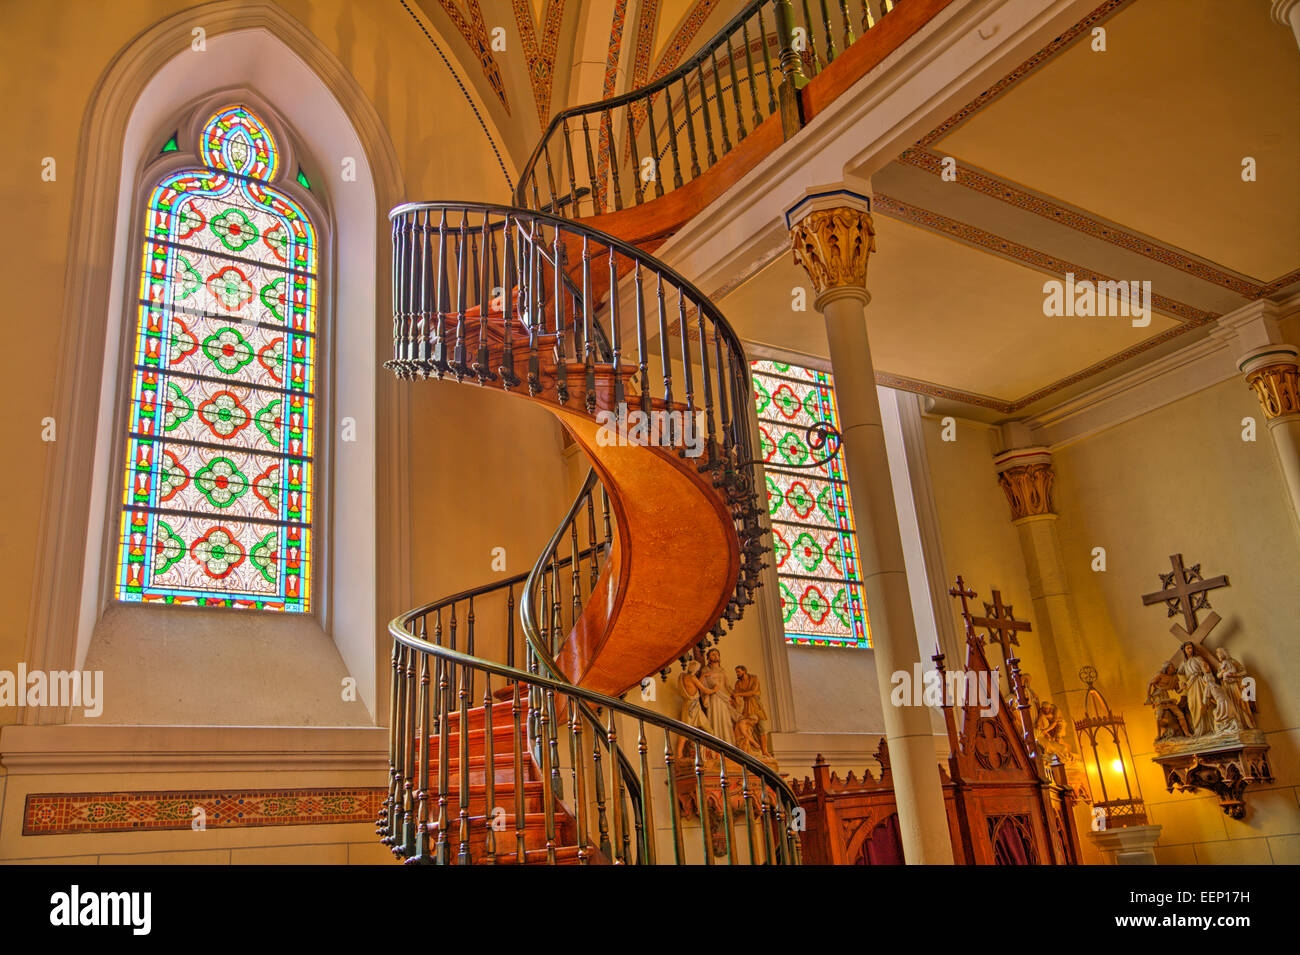 Loretto Chapel Staircase High Resolution Stock Photography And   Stairway Of Loretto Chapel   Original   Sister   Story   Spiral   Mysterious